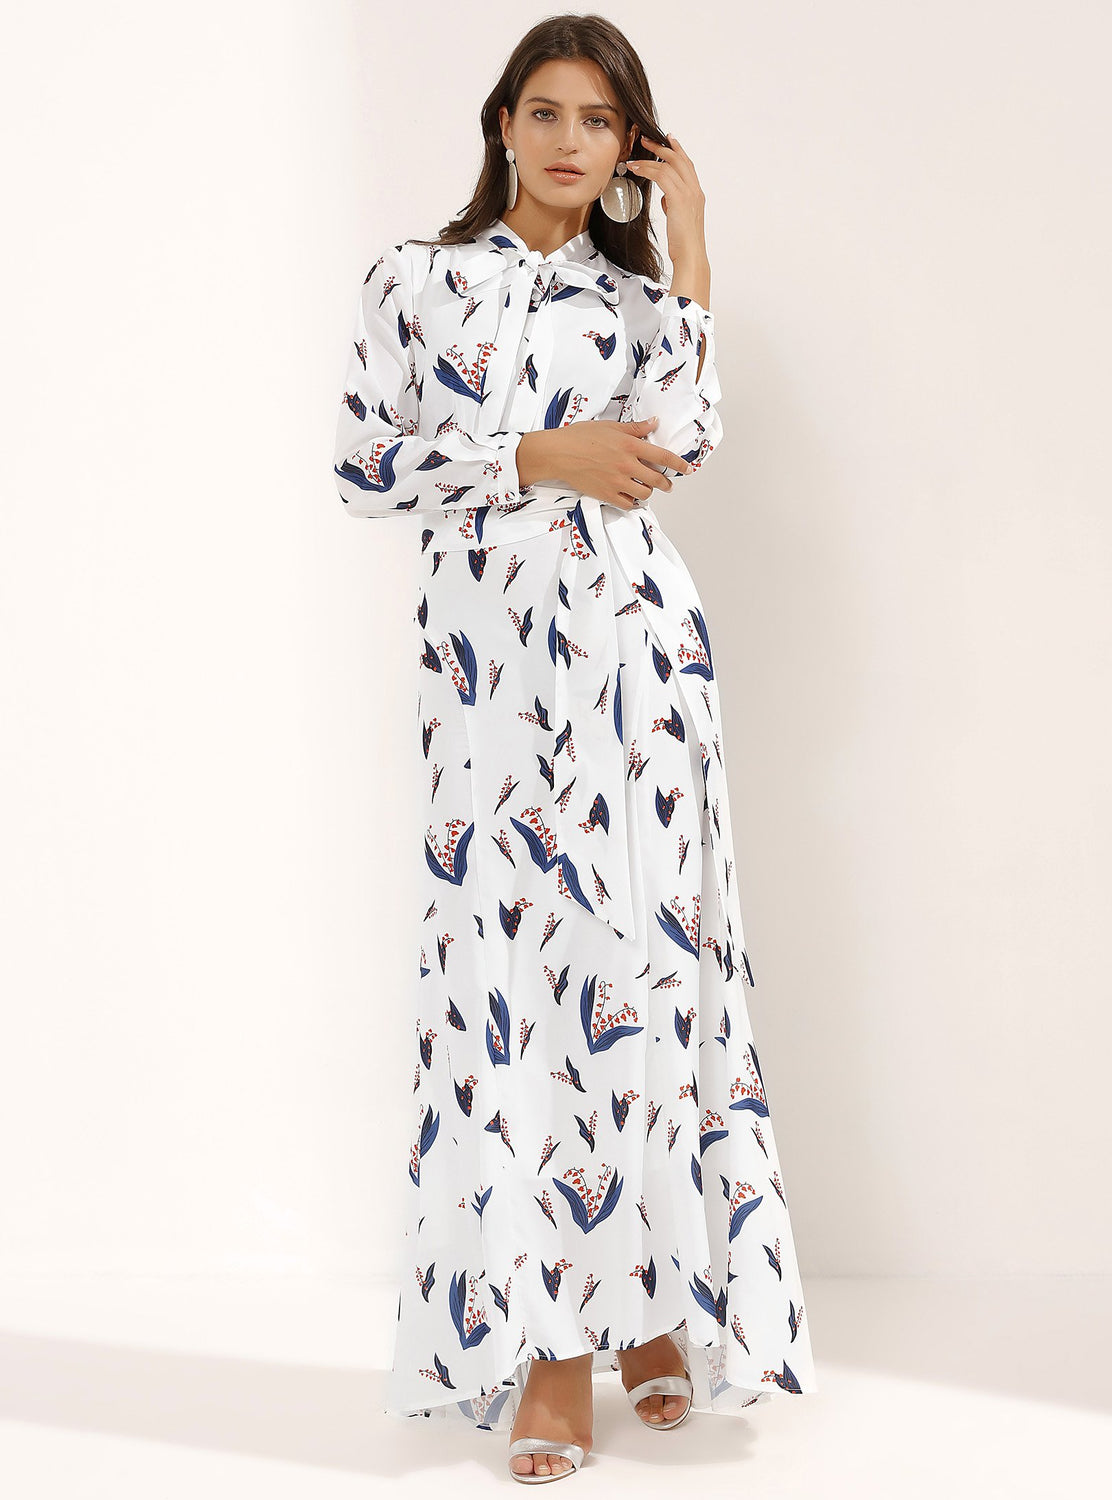 STORE WF Fitted White Maxi Dress Double Knotted Front Modest Long Dress With Blue Prints, Long Sleeves, Sash Collar and Belt